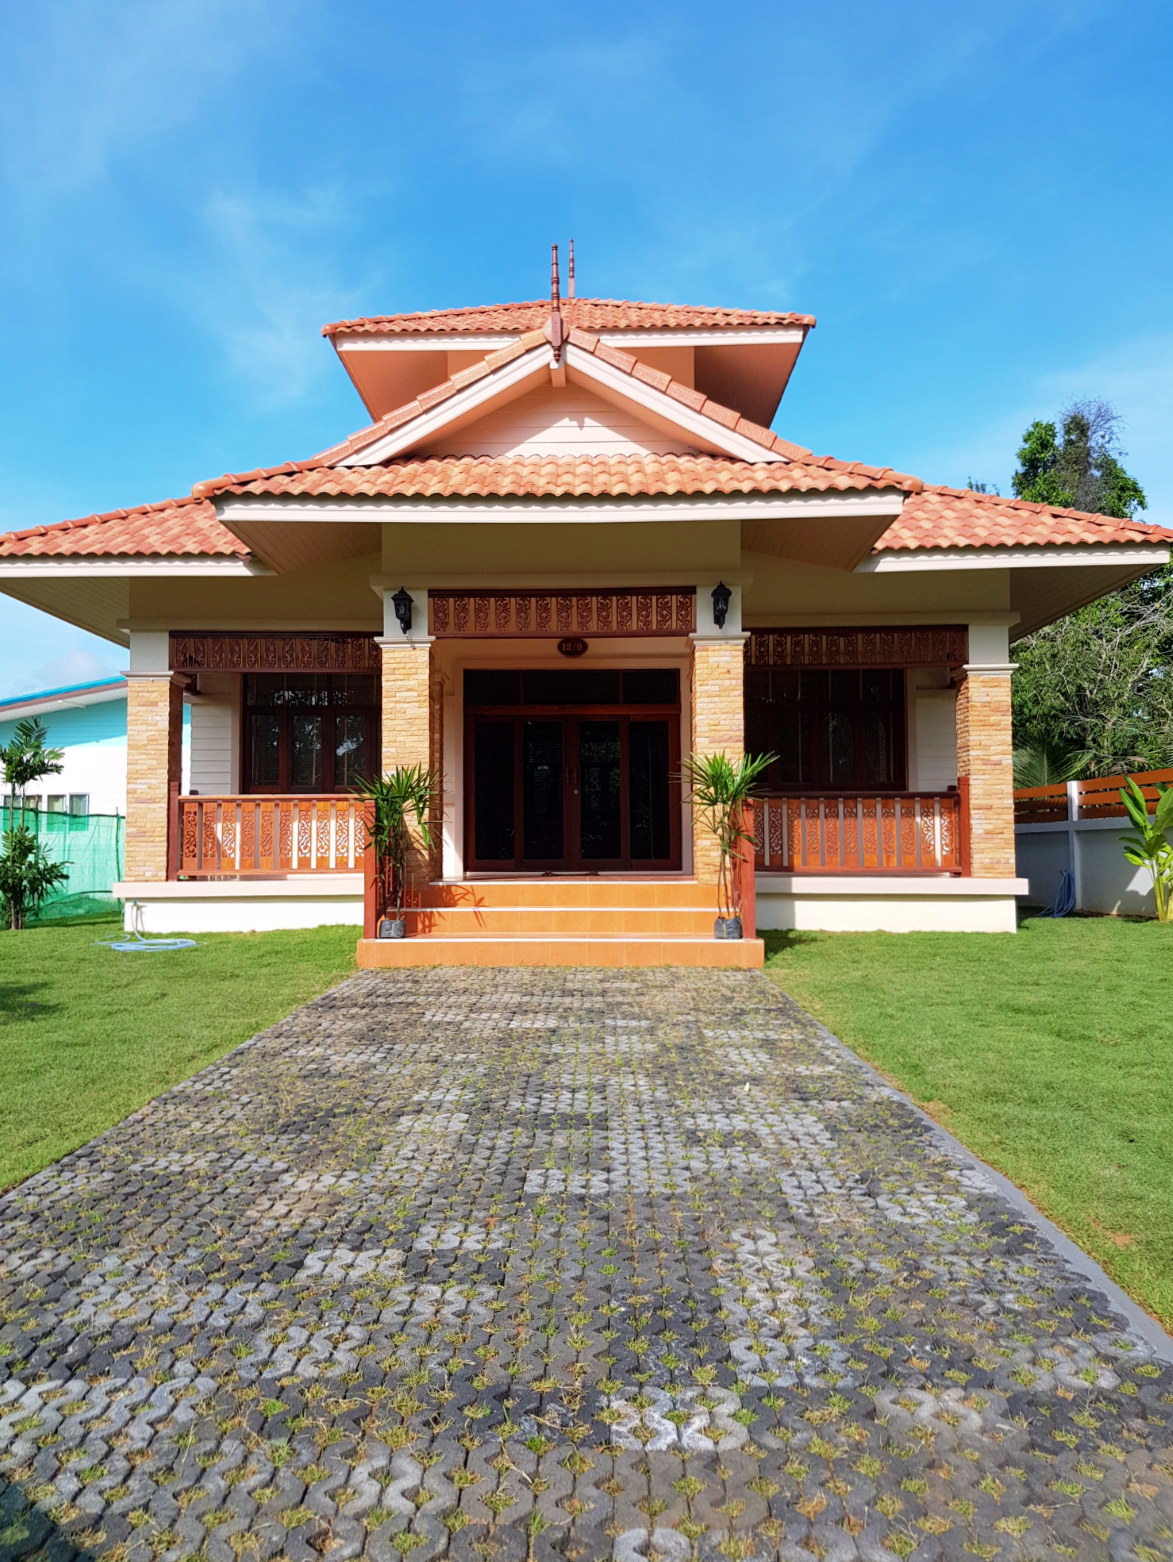 New quality built house for sale in peaceful area of east Na Muang | Samui Times